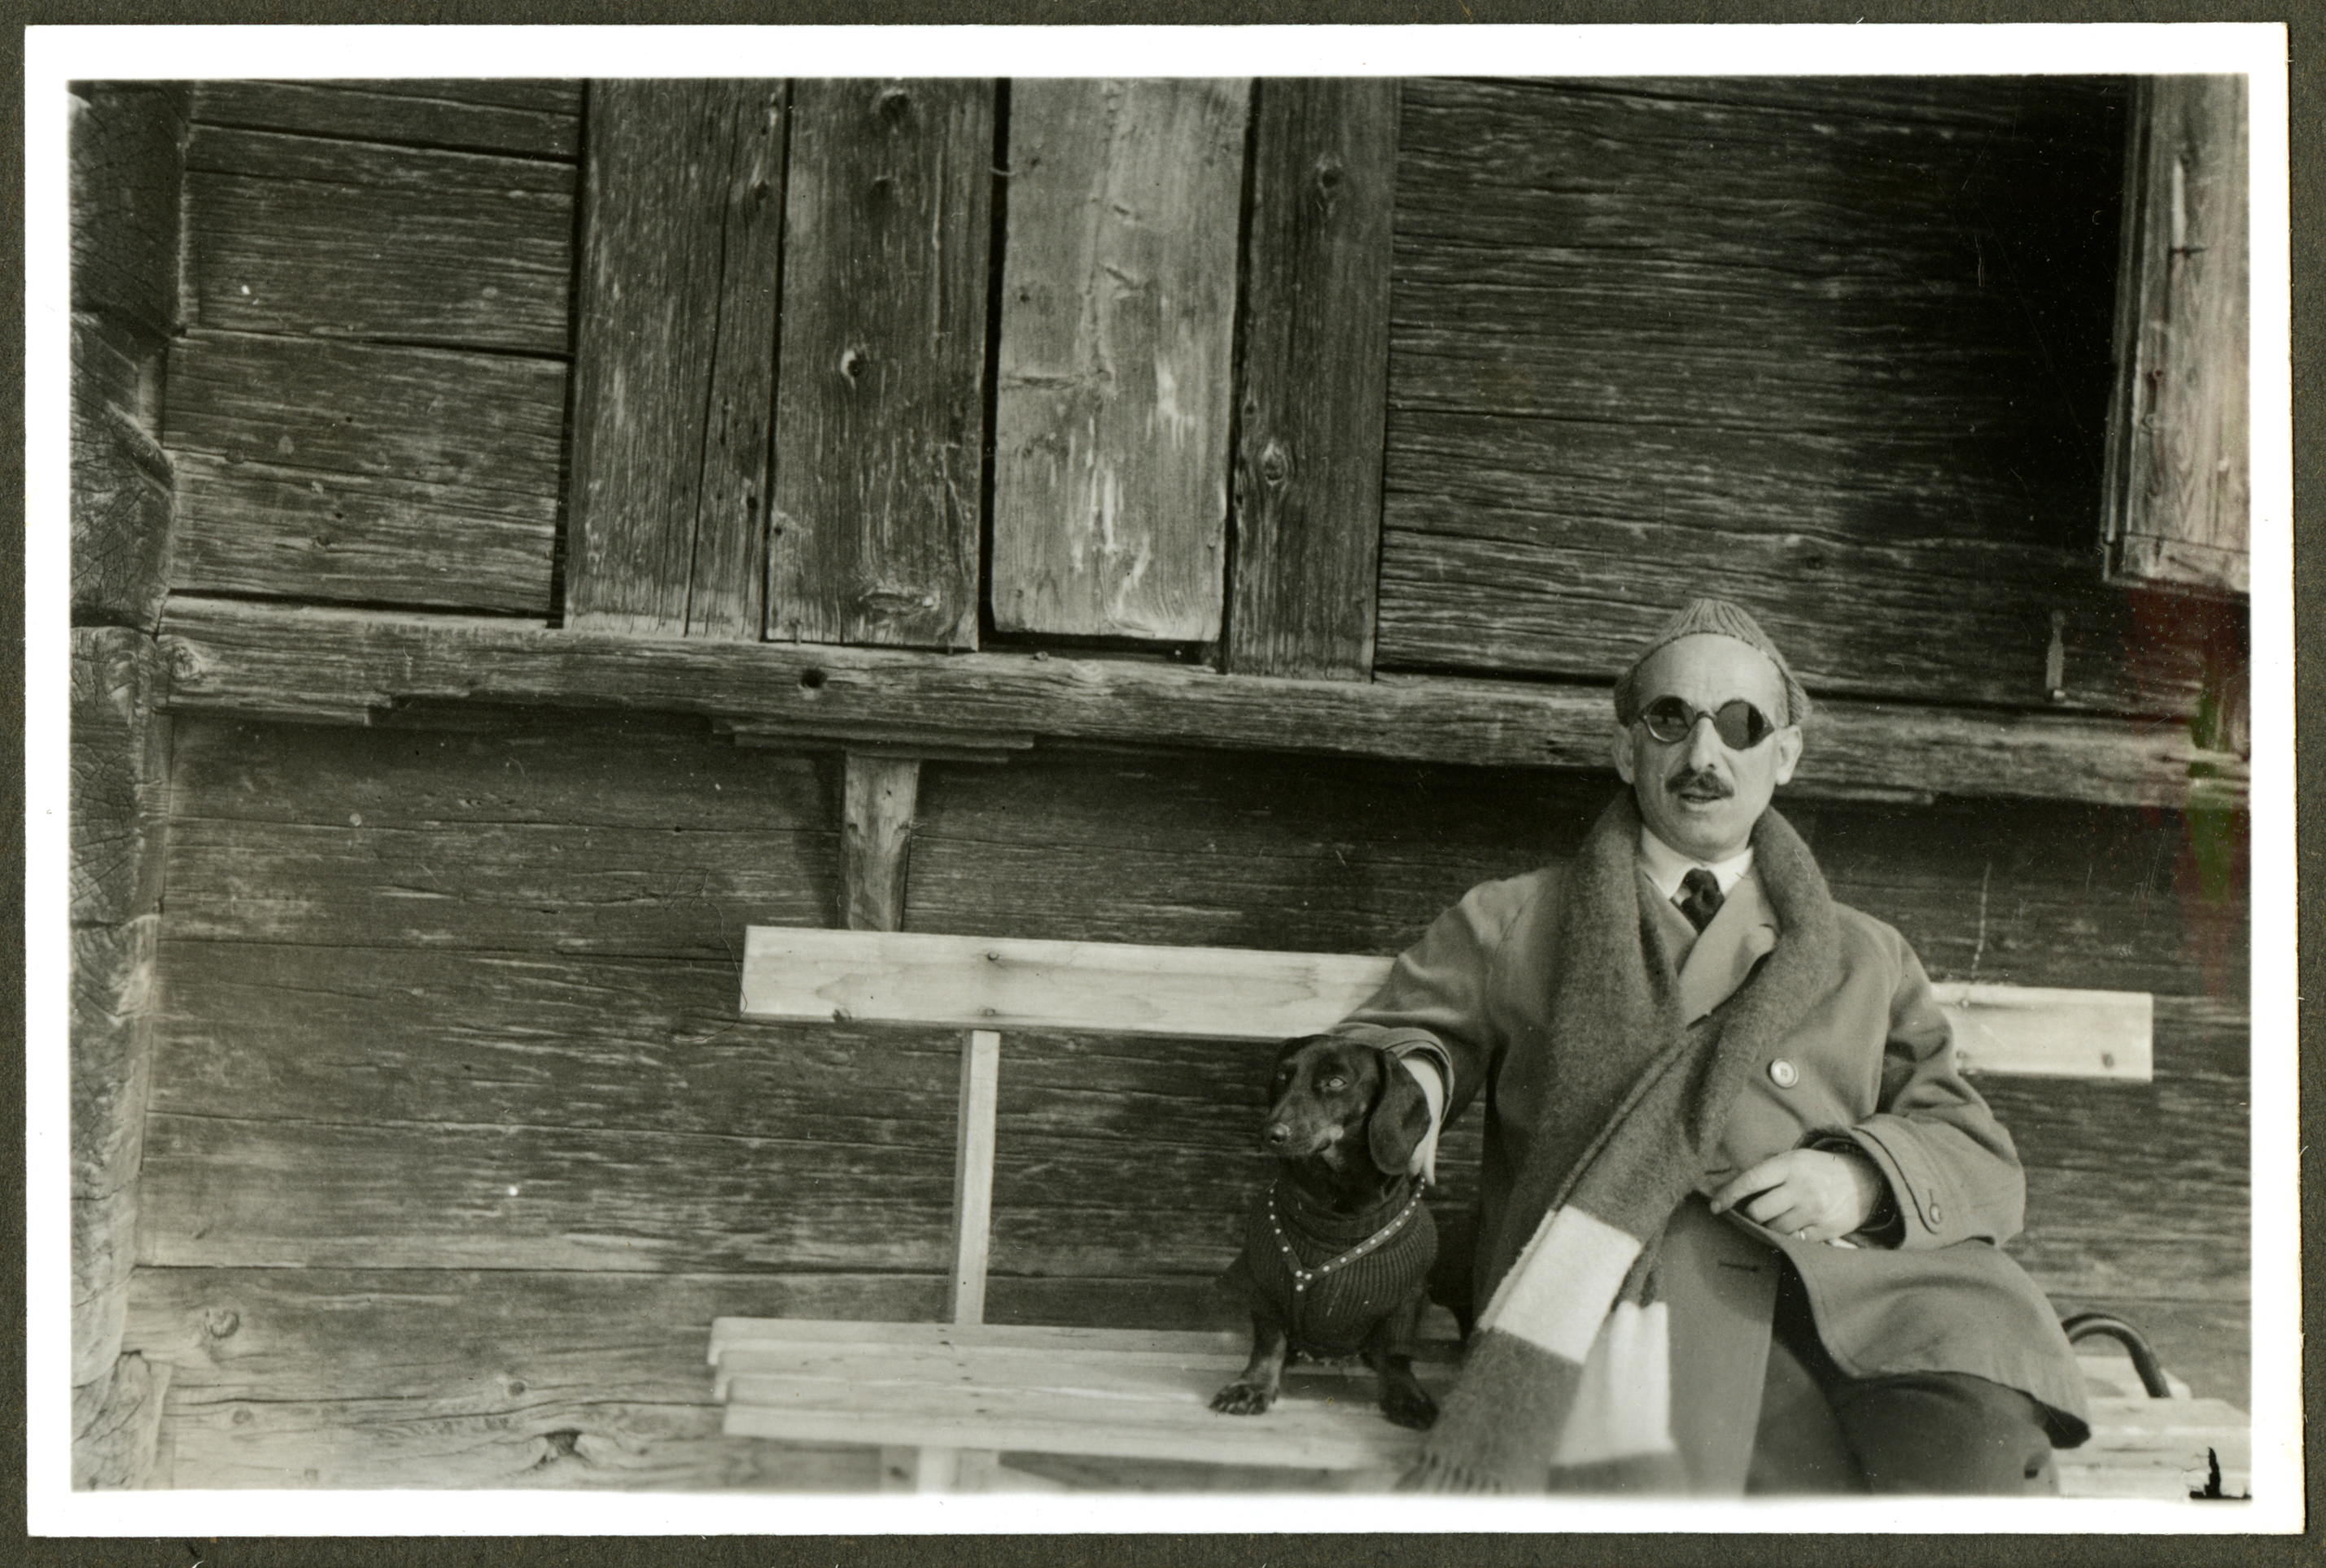 black and white photograph of a man wearing sunglasses and a coat seated on a bench with his pet Dachshund.